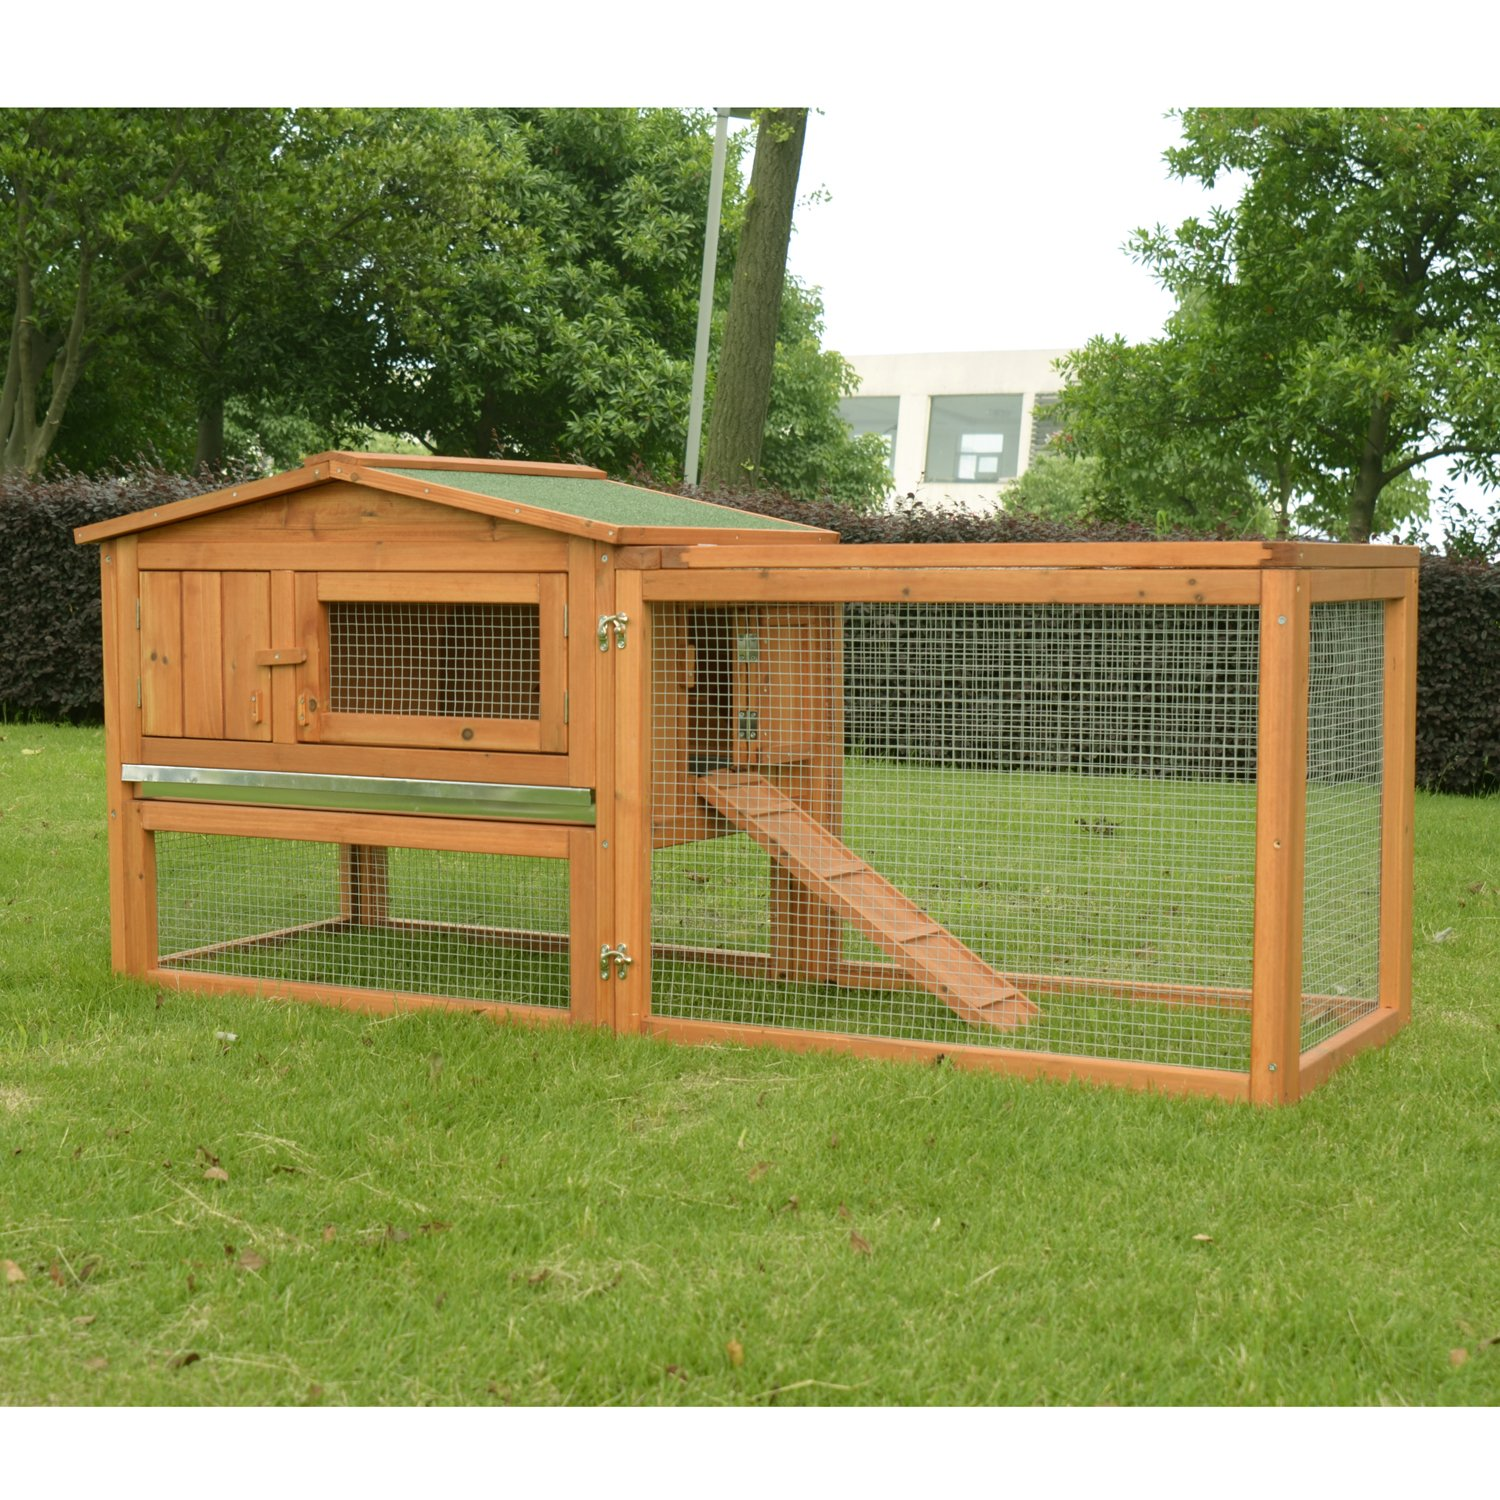 hutches backyard rabbit animal story outdoor hutch house supplies wooden new with tray pet small pawhut run